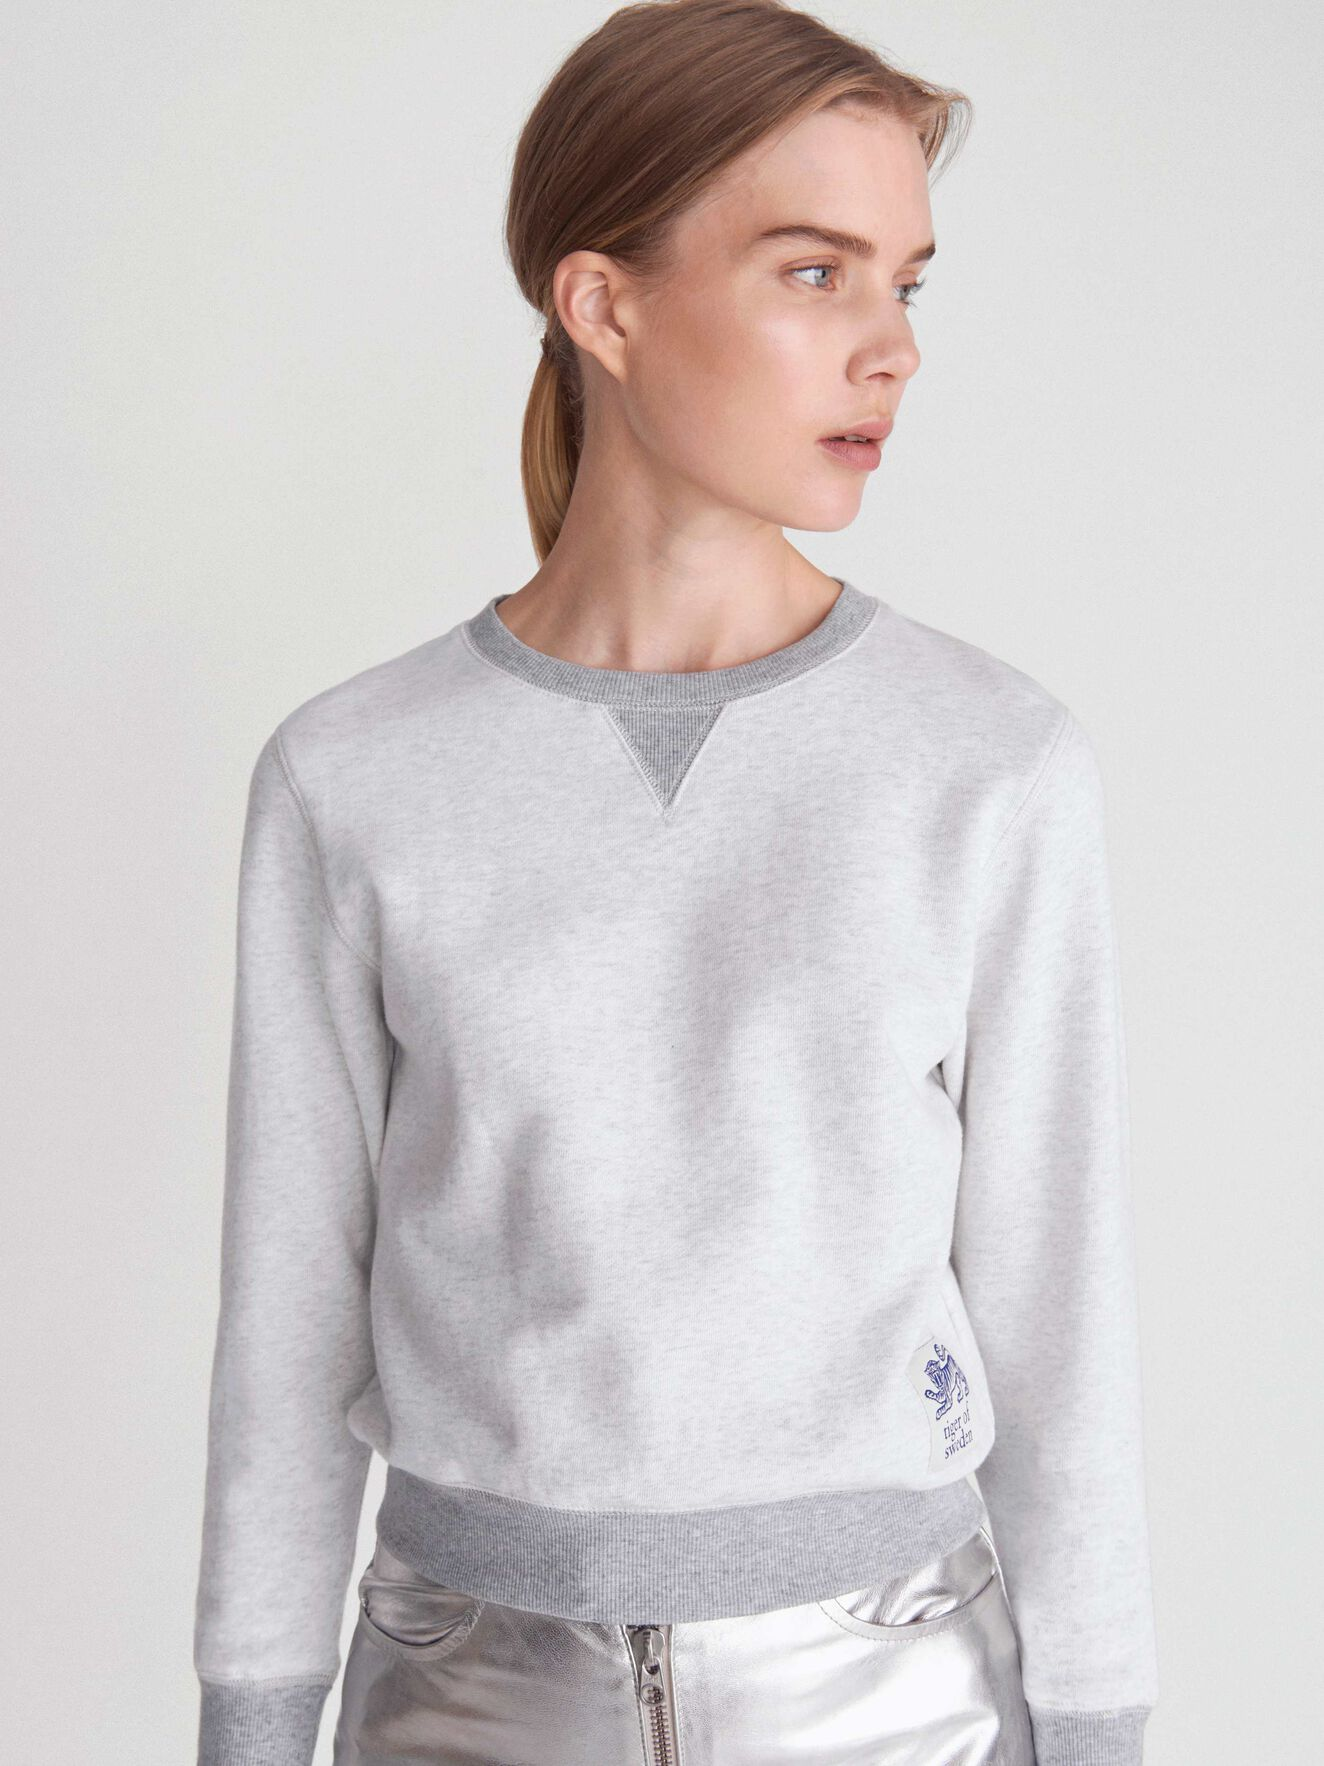 Obscura Sweatshirt in White Light from Tiger of Sweden